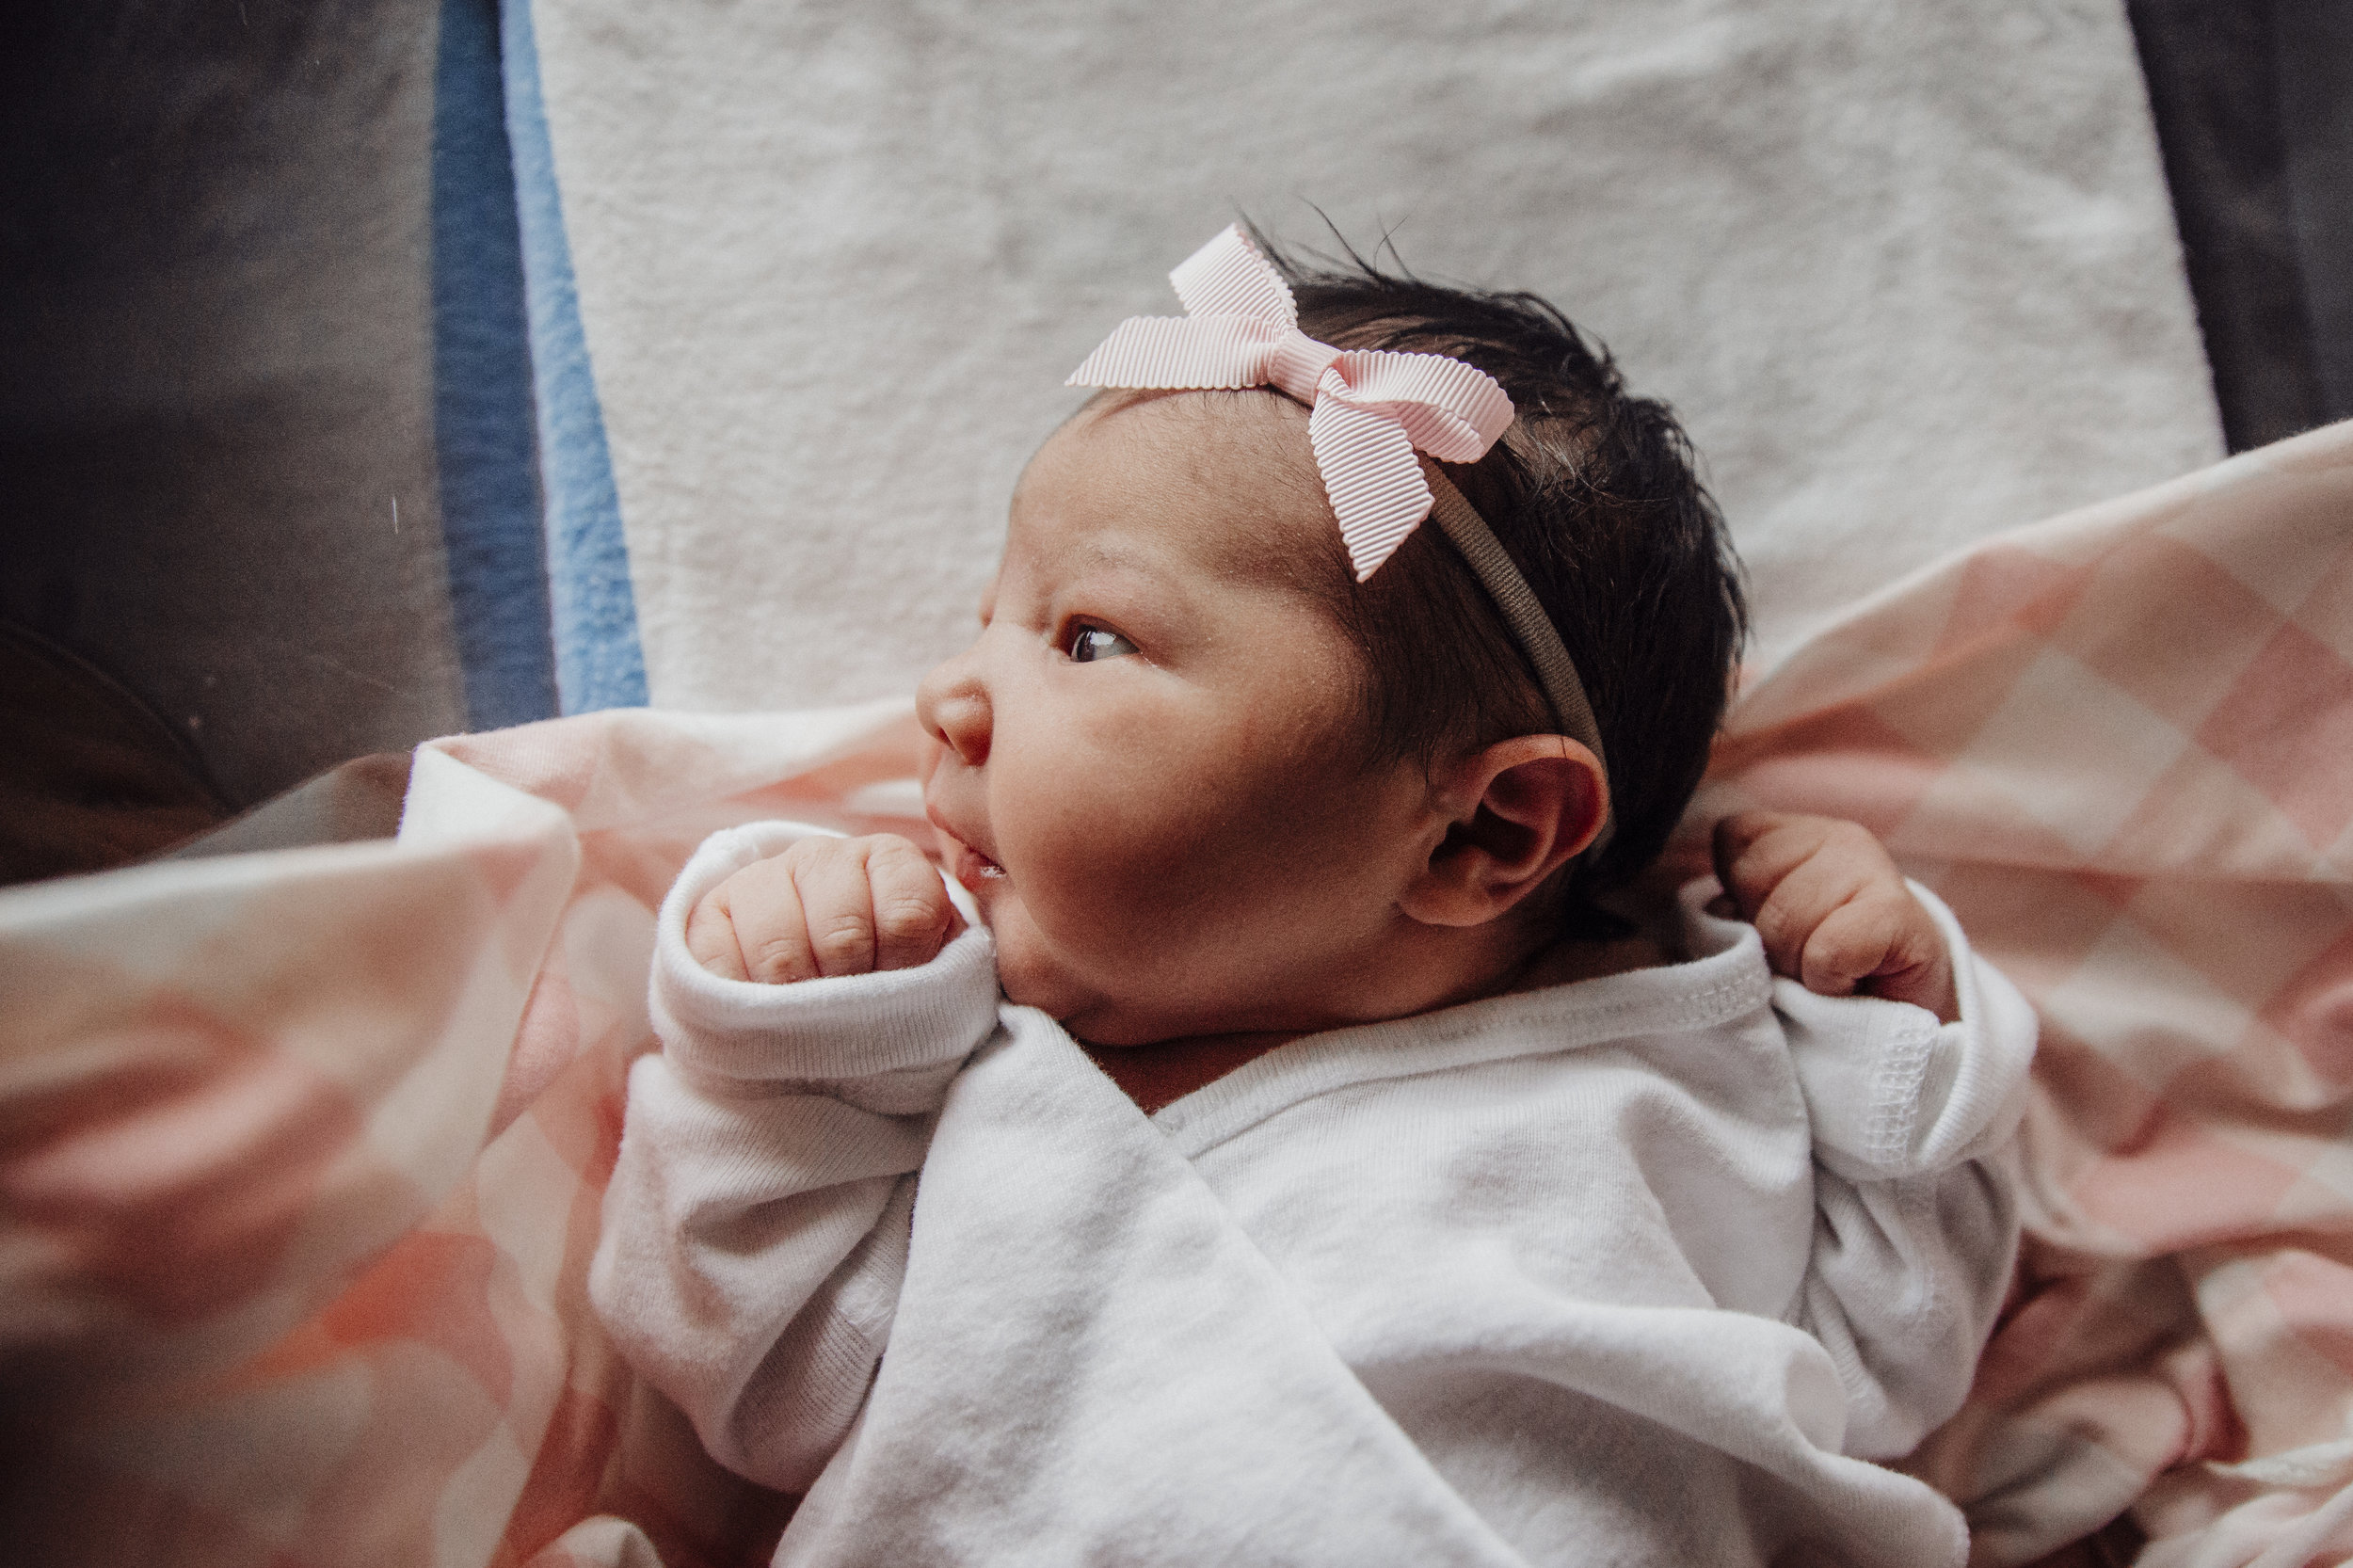 allie wilson photography nj new jersey newborn lifestyle fresh 48 photographer